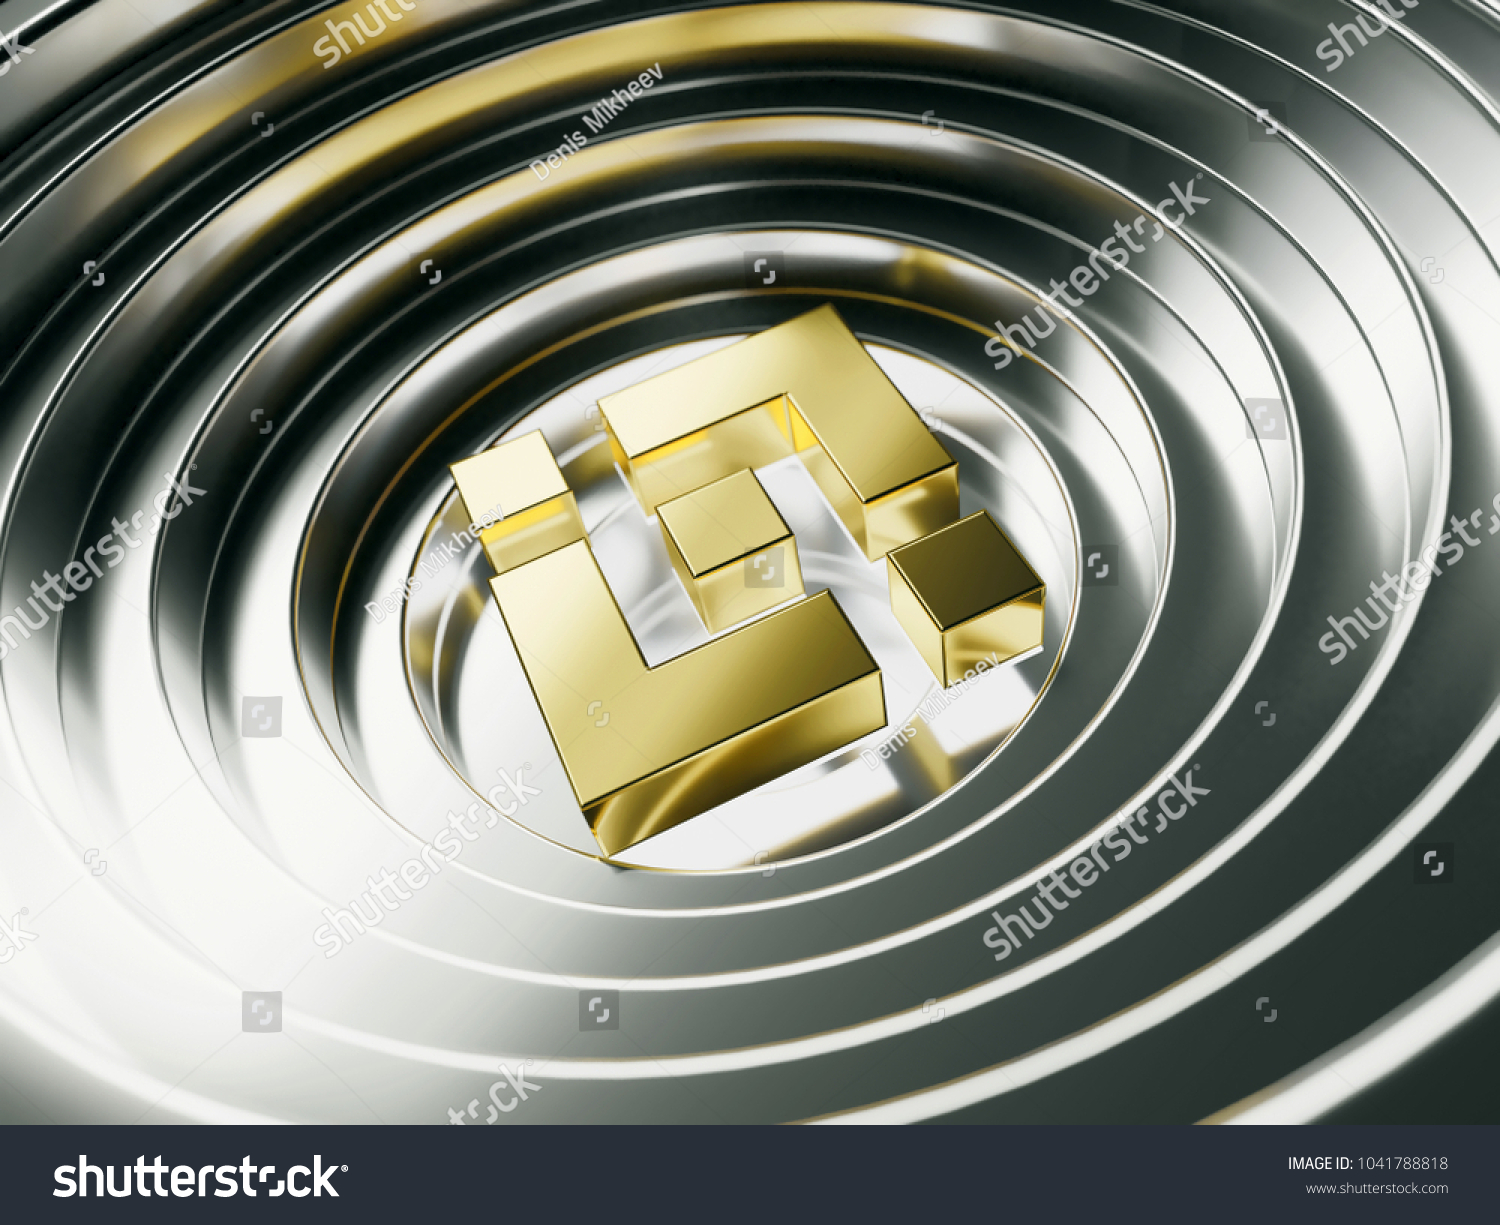 Golden Binance Coin Crypto Currency Symbol Stock Illustration